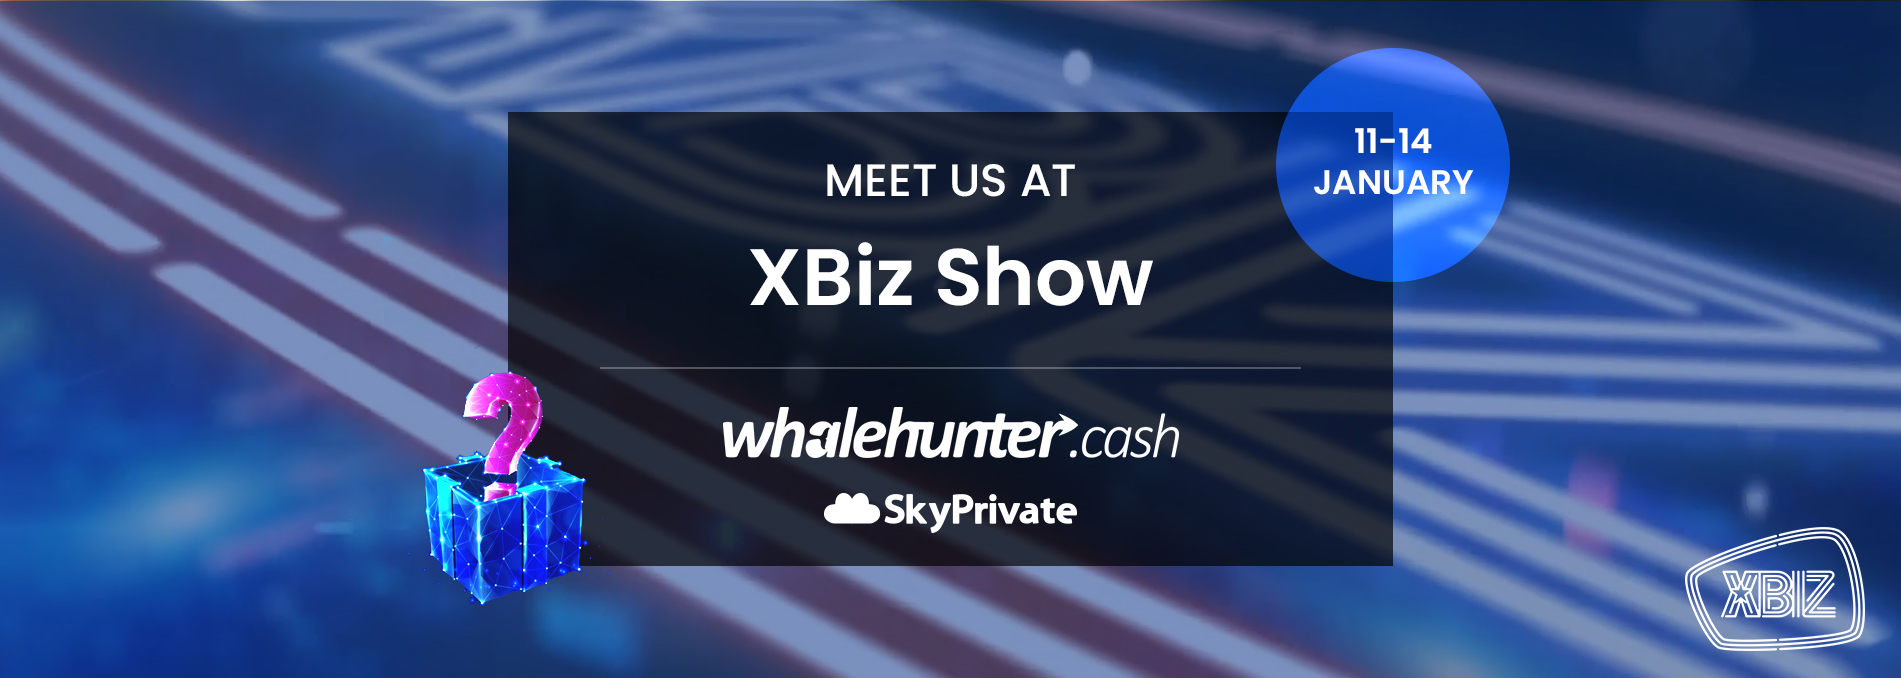 Meet Whalehunter.cash at XBiz Show 2021!